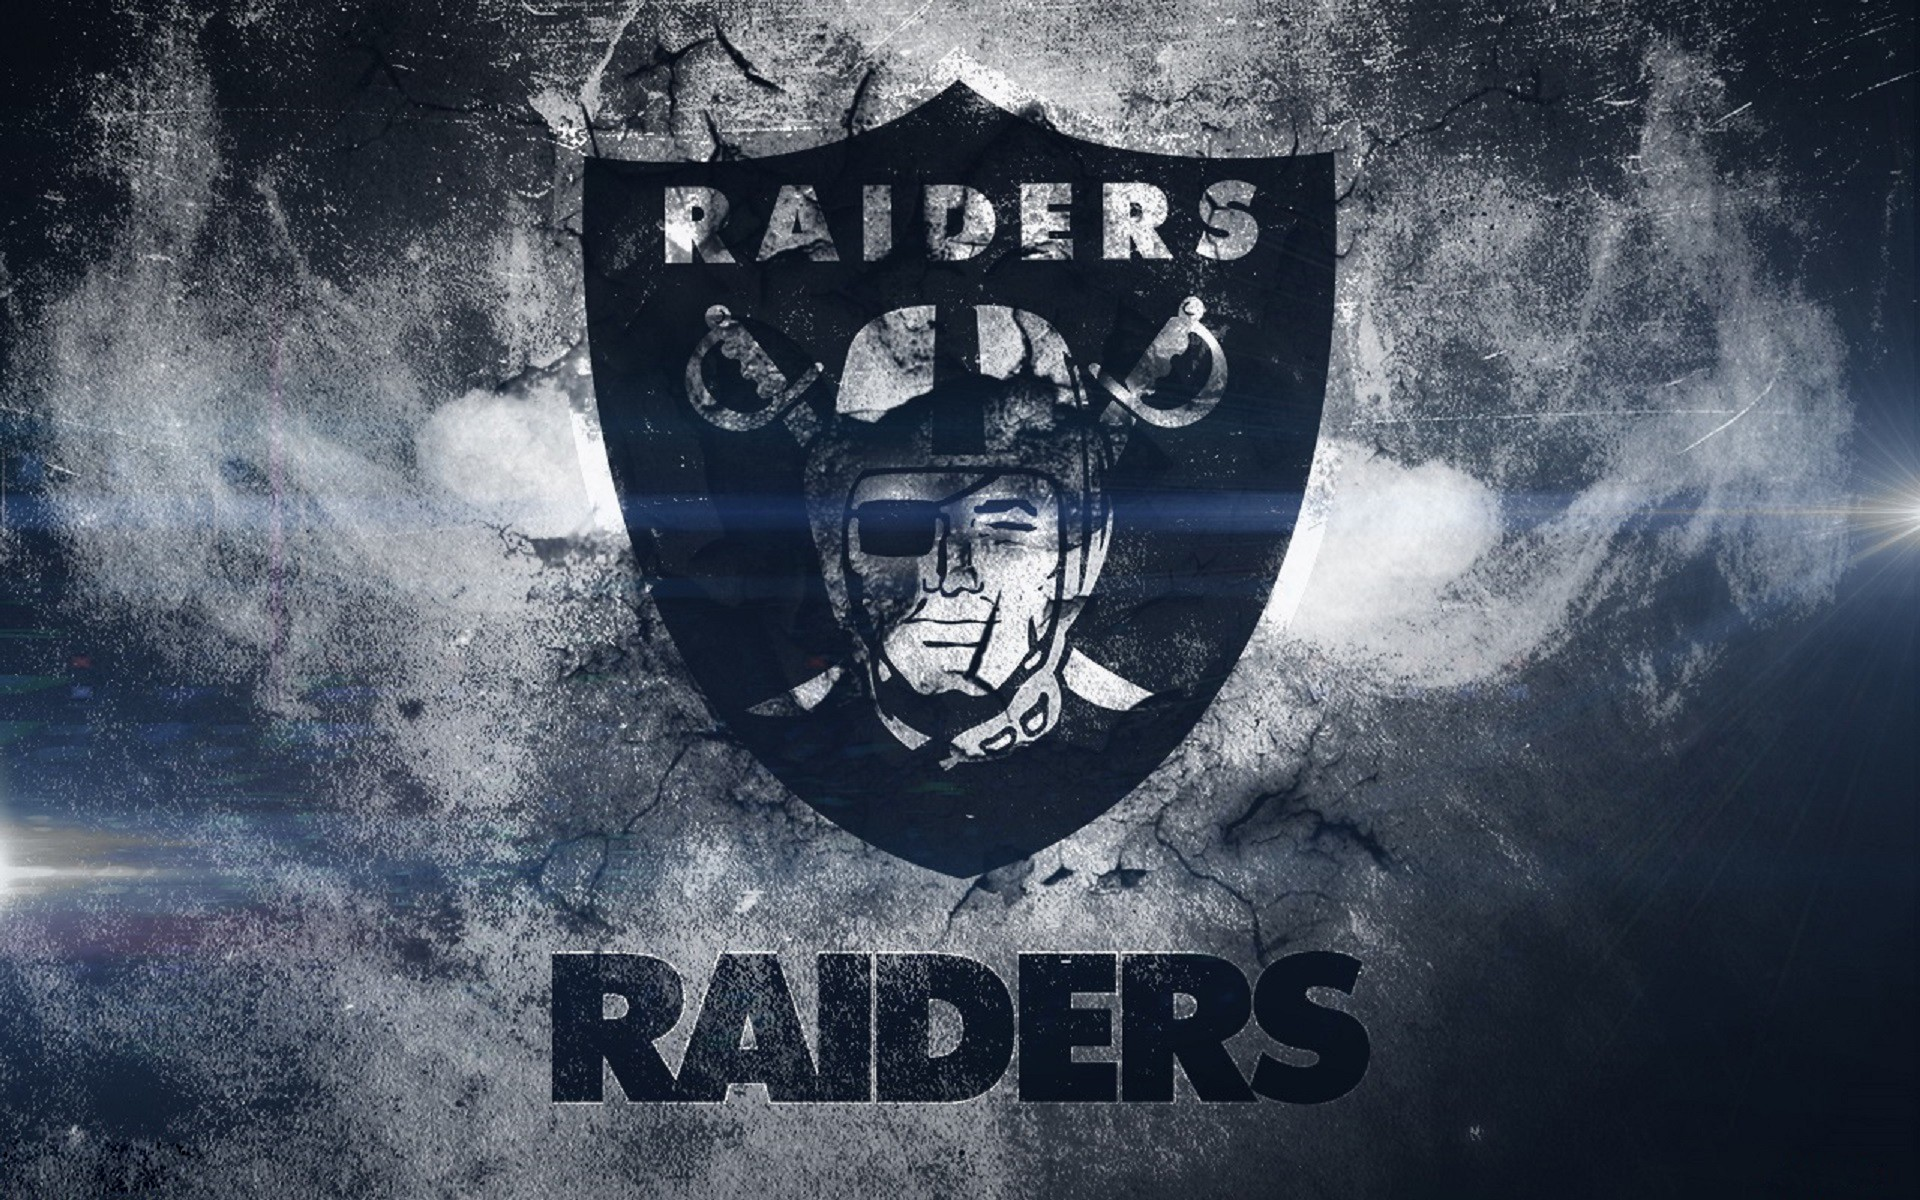 Oakland Raiders Wallpaper 1 Download Free Awesome Full HD